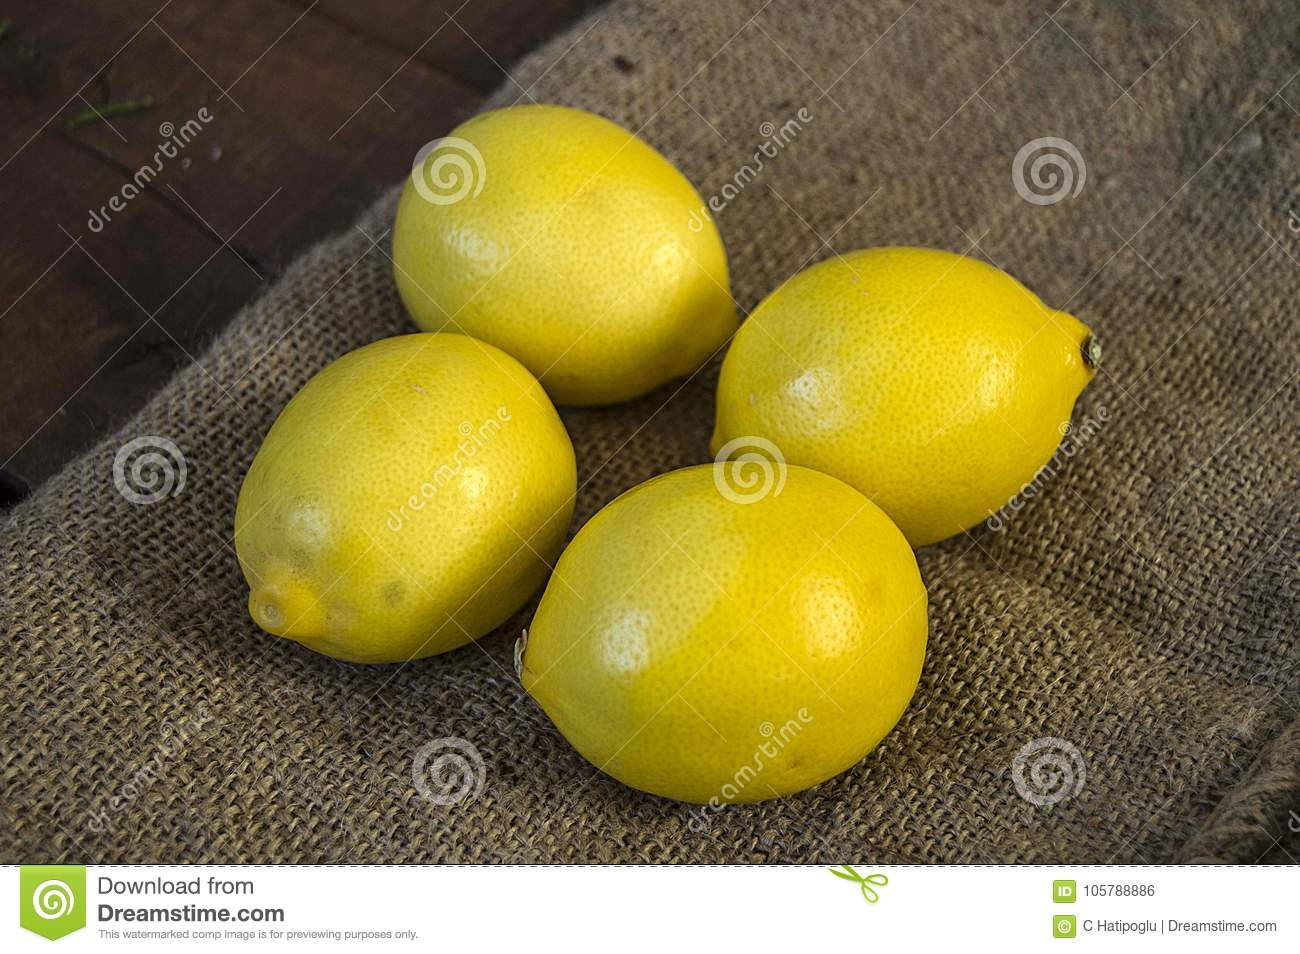 Great Looking Lemon Paintings For Salads And Sauces In The ...